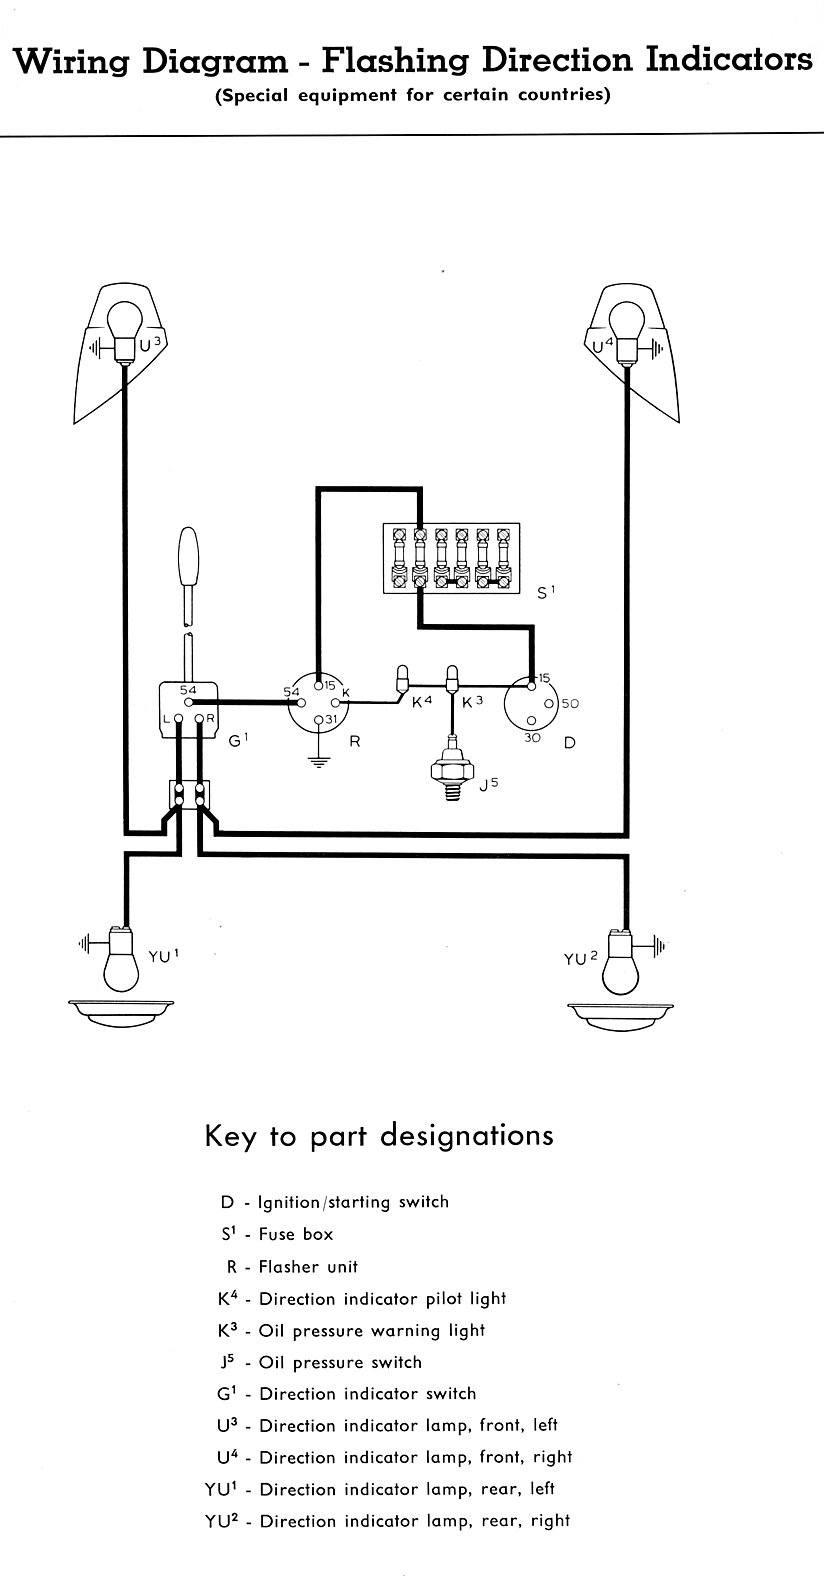 TheSamba.com :: Type 2 Wiring Diagrams | 74 Vw Bus Wiring Diagram Relays |  | TheSamba.com